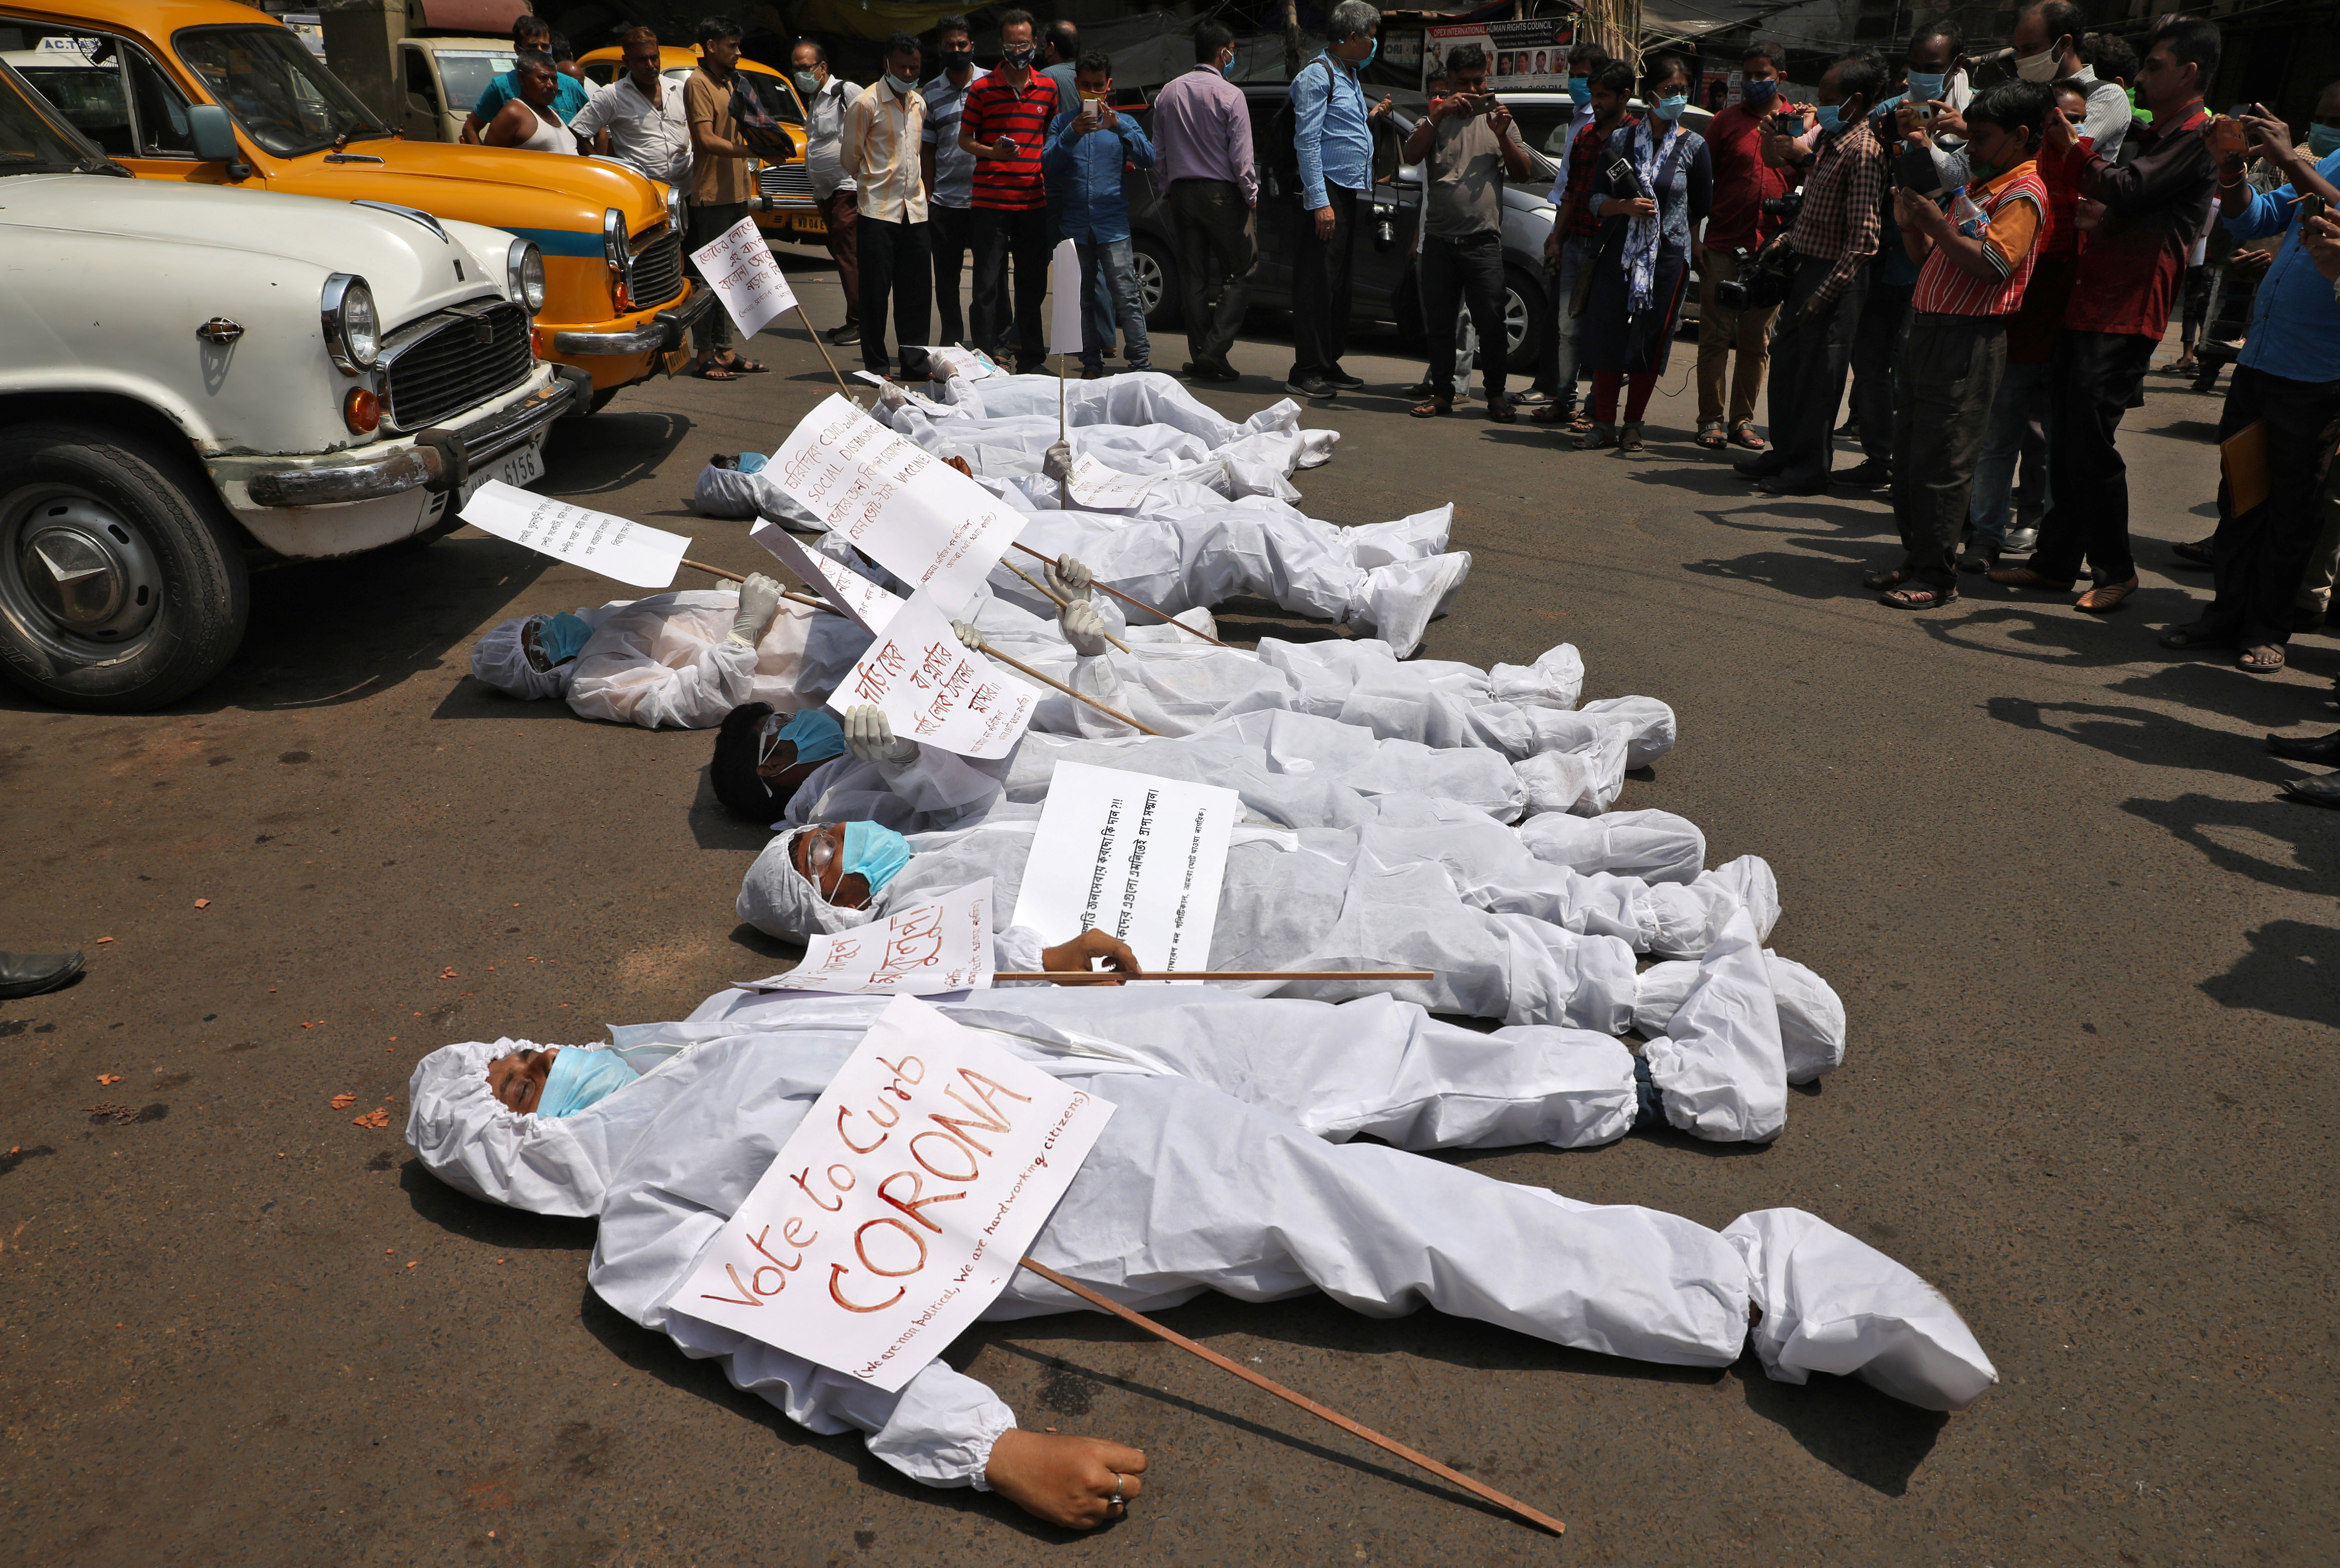 Demonstrators in protective suits and masks lie on a road during a protest demanding to stop election and campaign rallies in the eastern state of West Bengal, amidst the spread of the coronavirus disease (COVID-19), near the office of the Election Commission in Kolkata, India, April 7, 2021. REUTERS/Rupak De Chowdhuri/File Photo